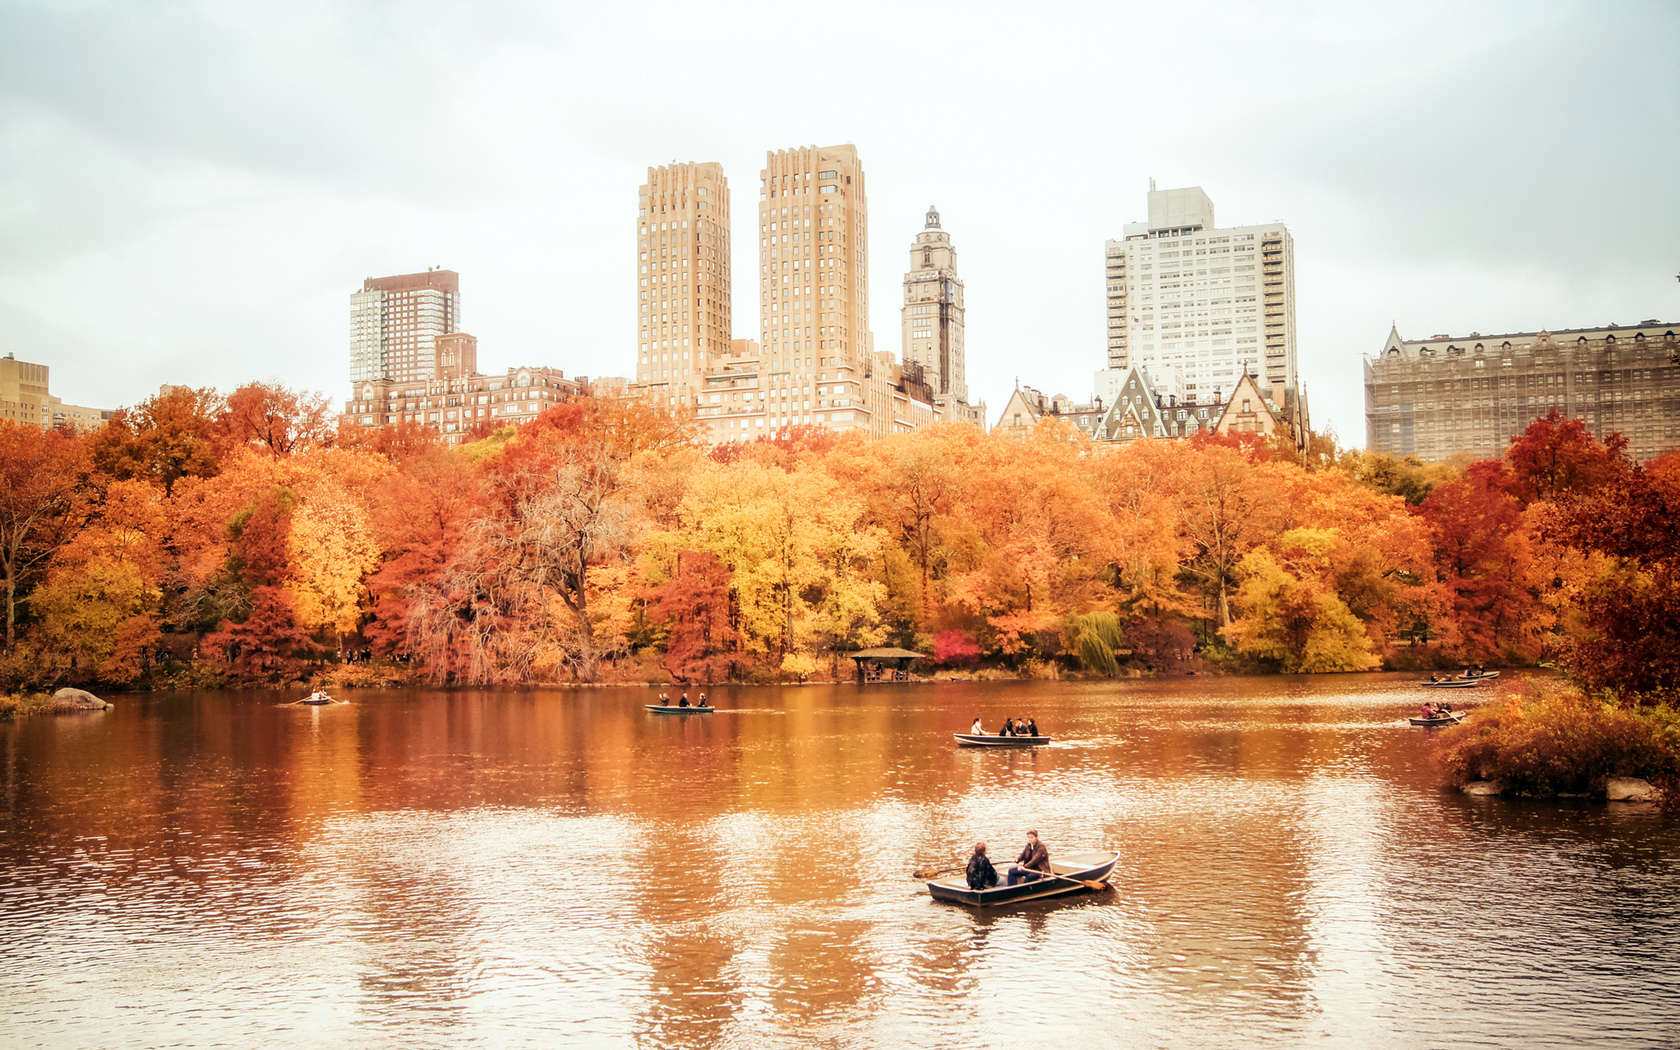 new york, new york city, nyc, usa, нью-йорк, manhattan, манхэттен, central park